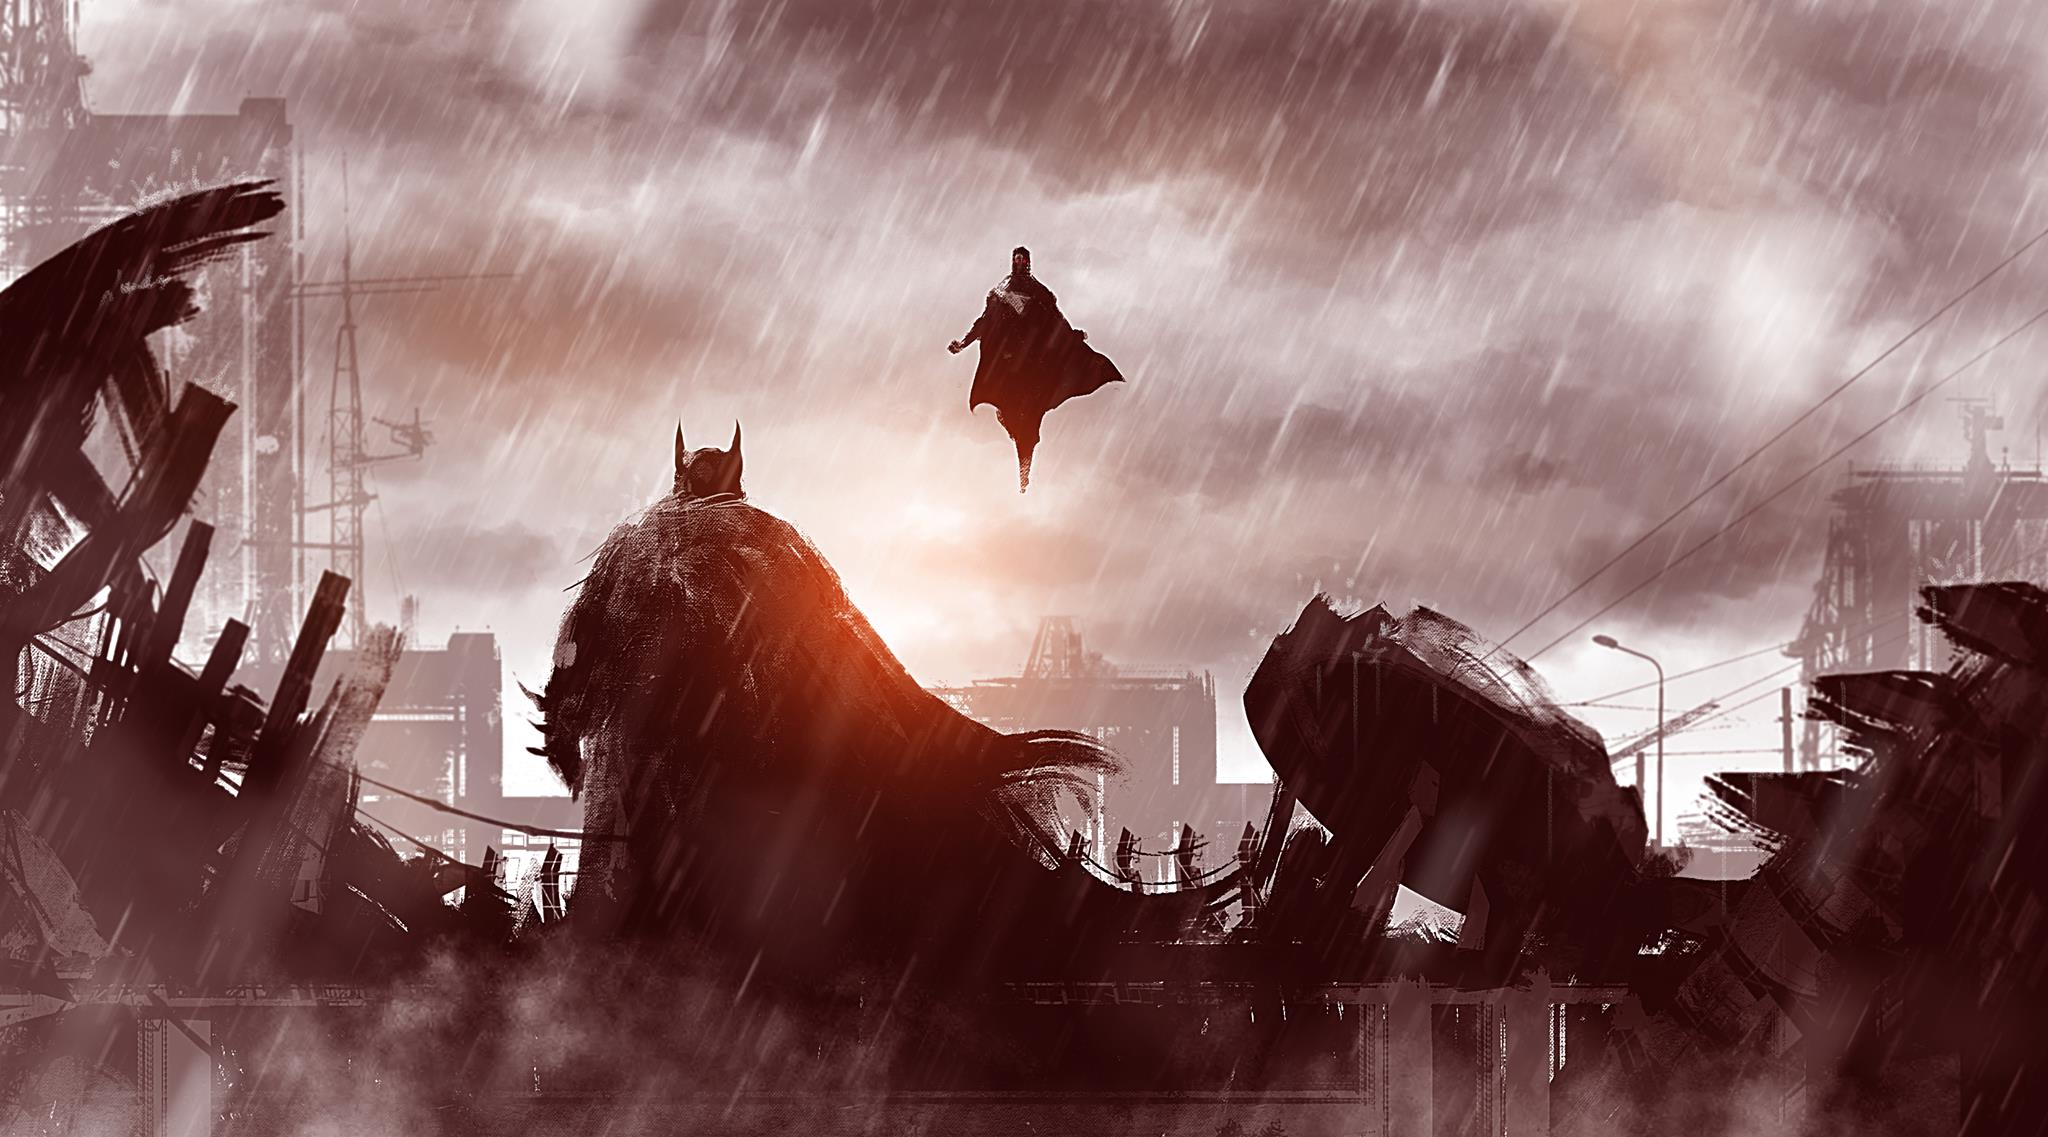 Hd Wallpapers Batman Vs Superman Download in Many size ranging from 2048x1137